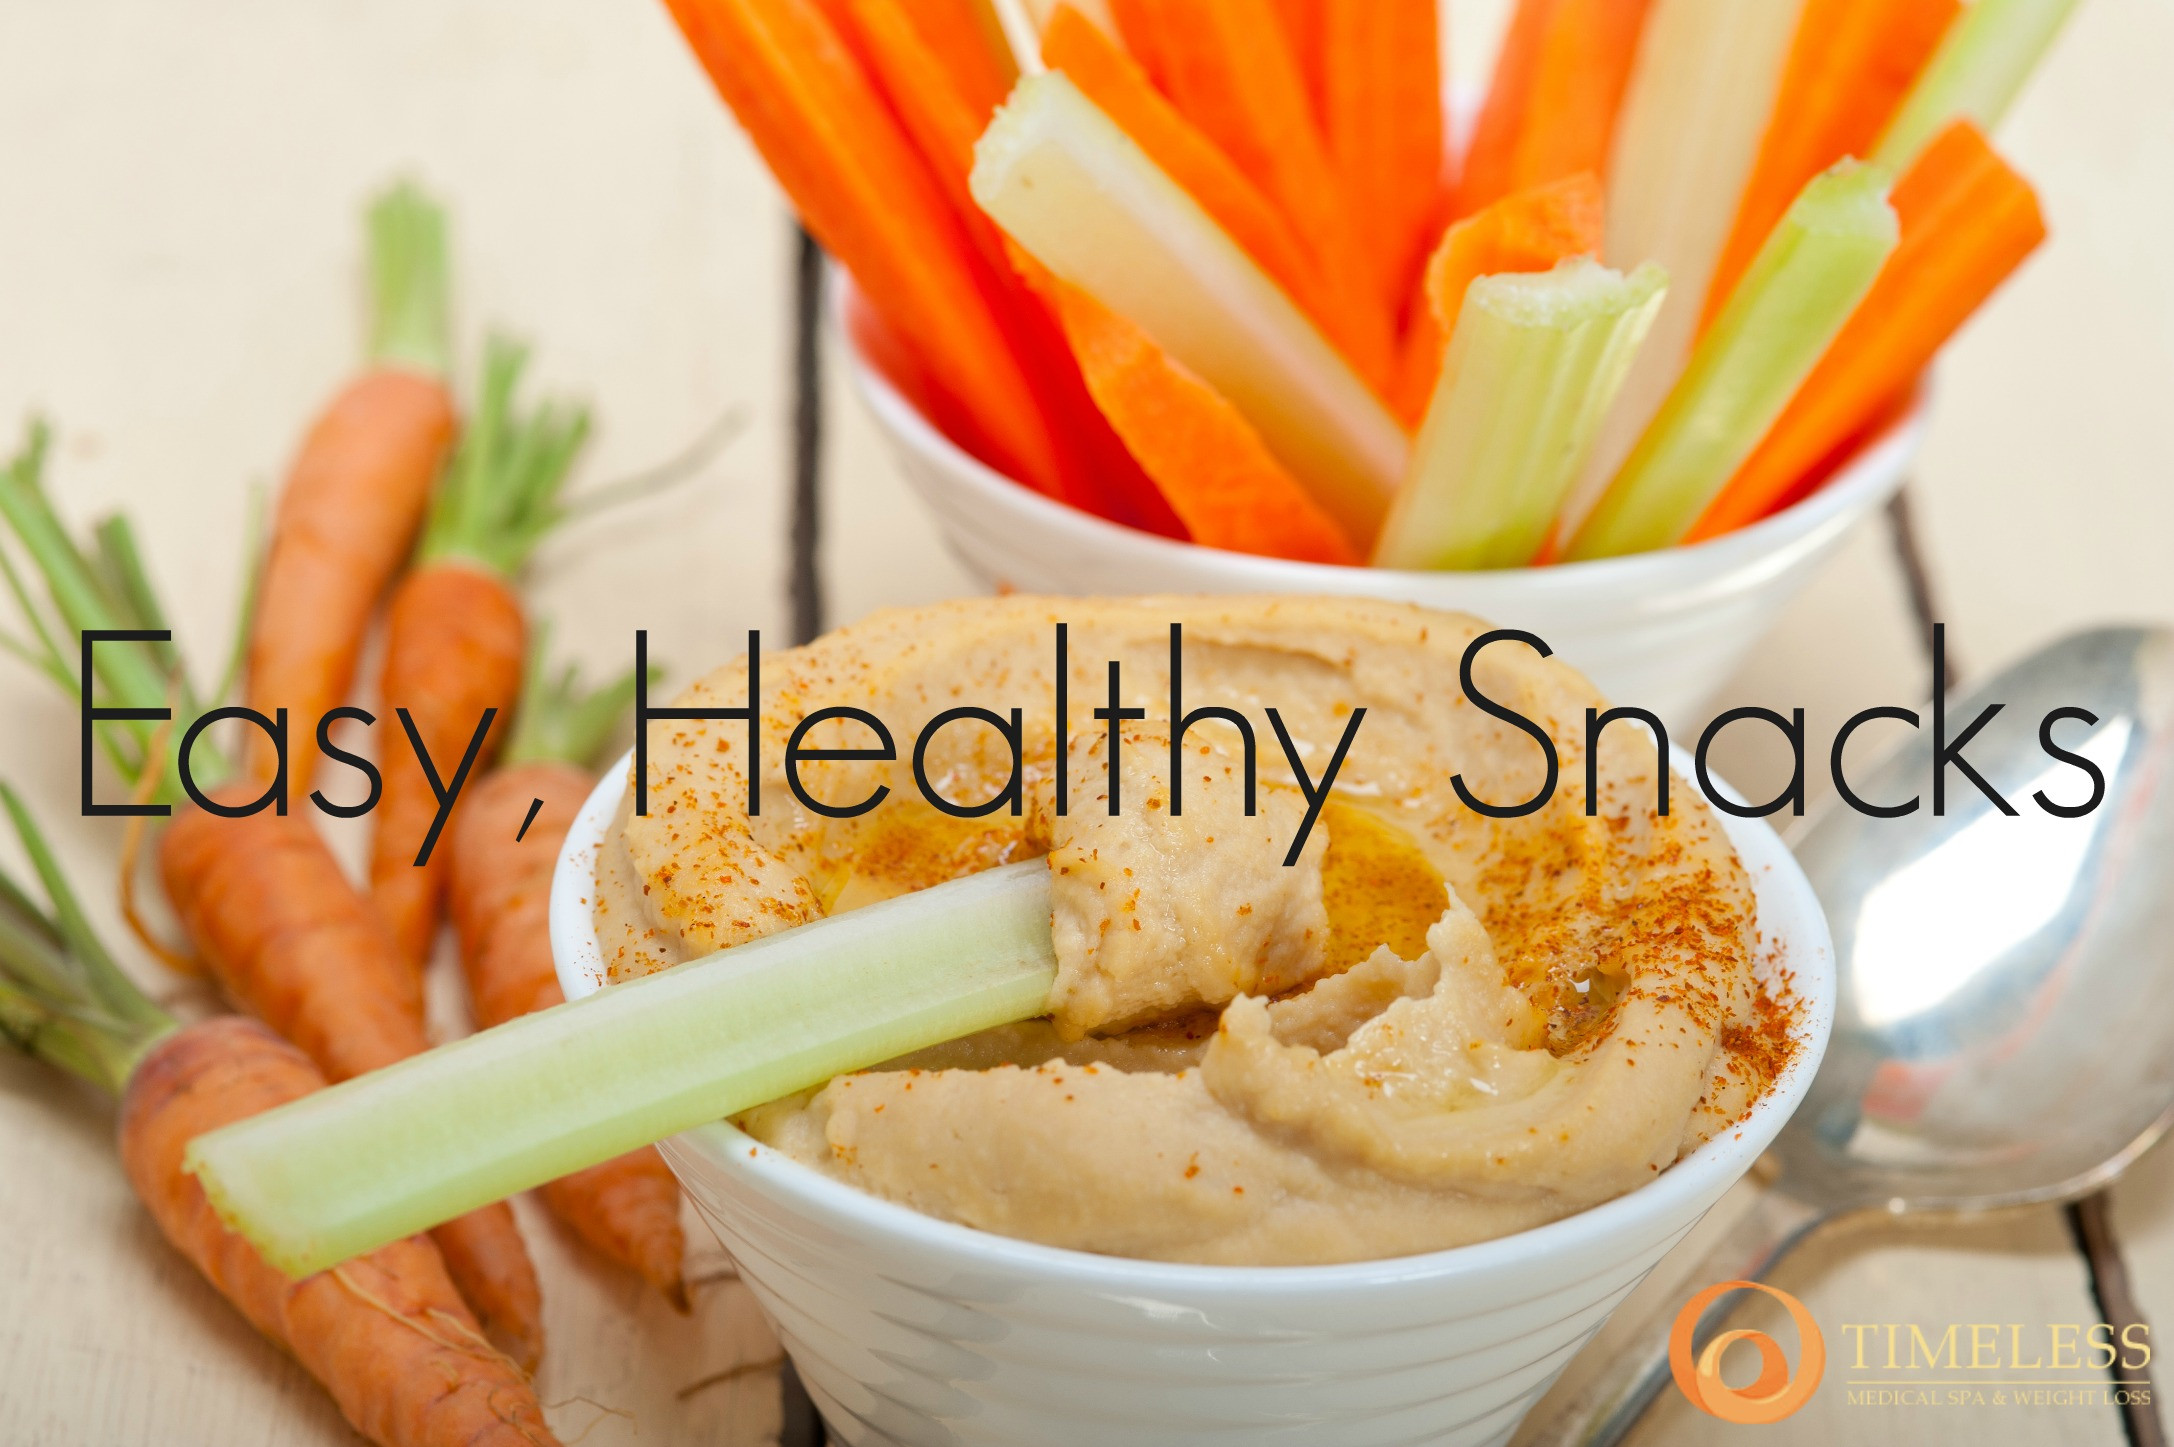 Simple Healthy Snacks  Easy Healthy Snack Ideas TimeLess Weight Loss Blog